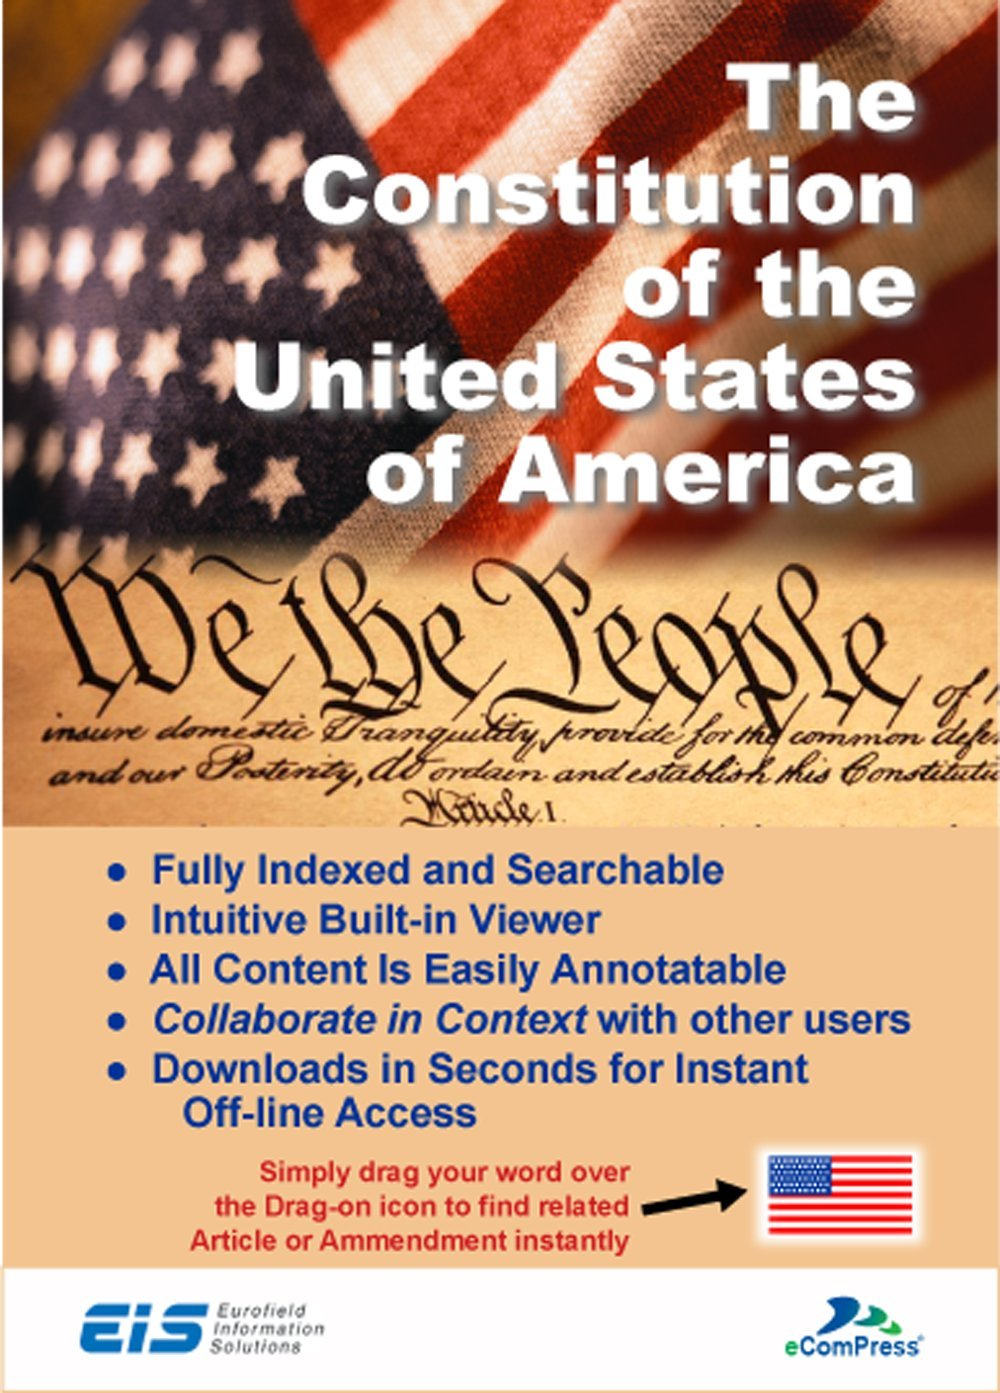 Free Windows Download of U.S. Constitution PC App